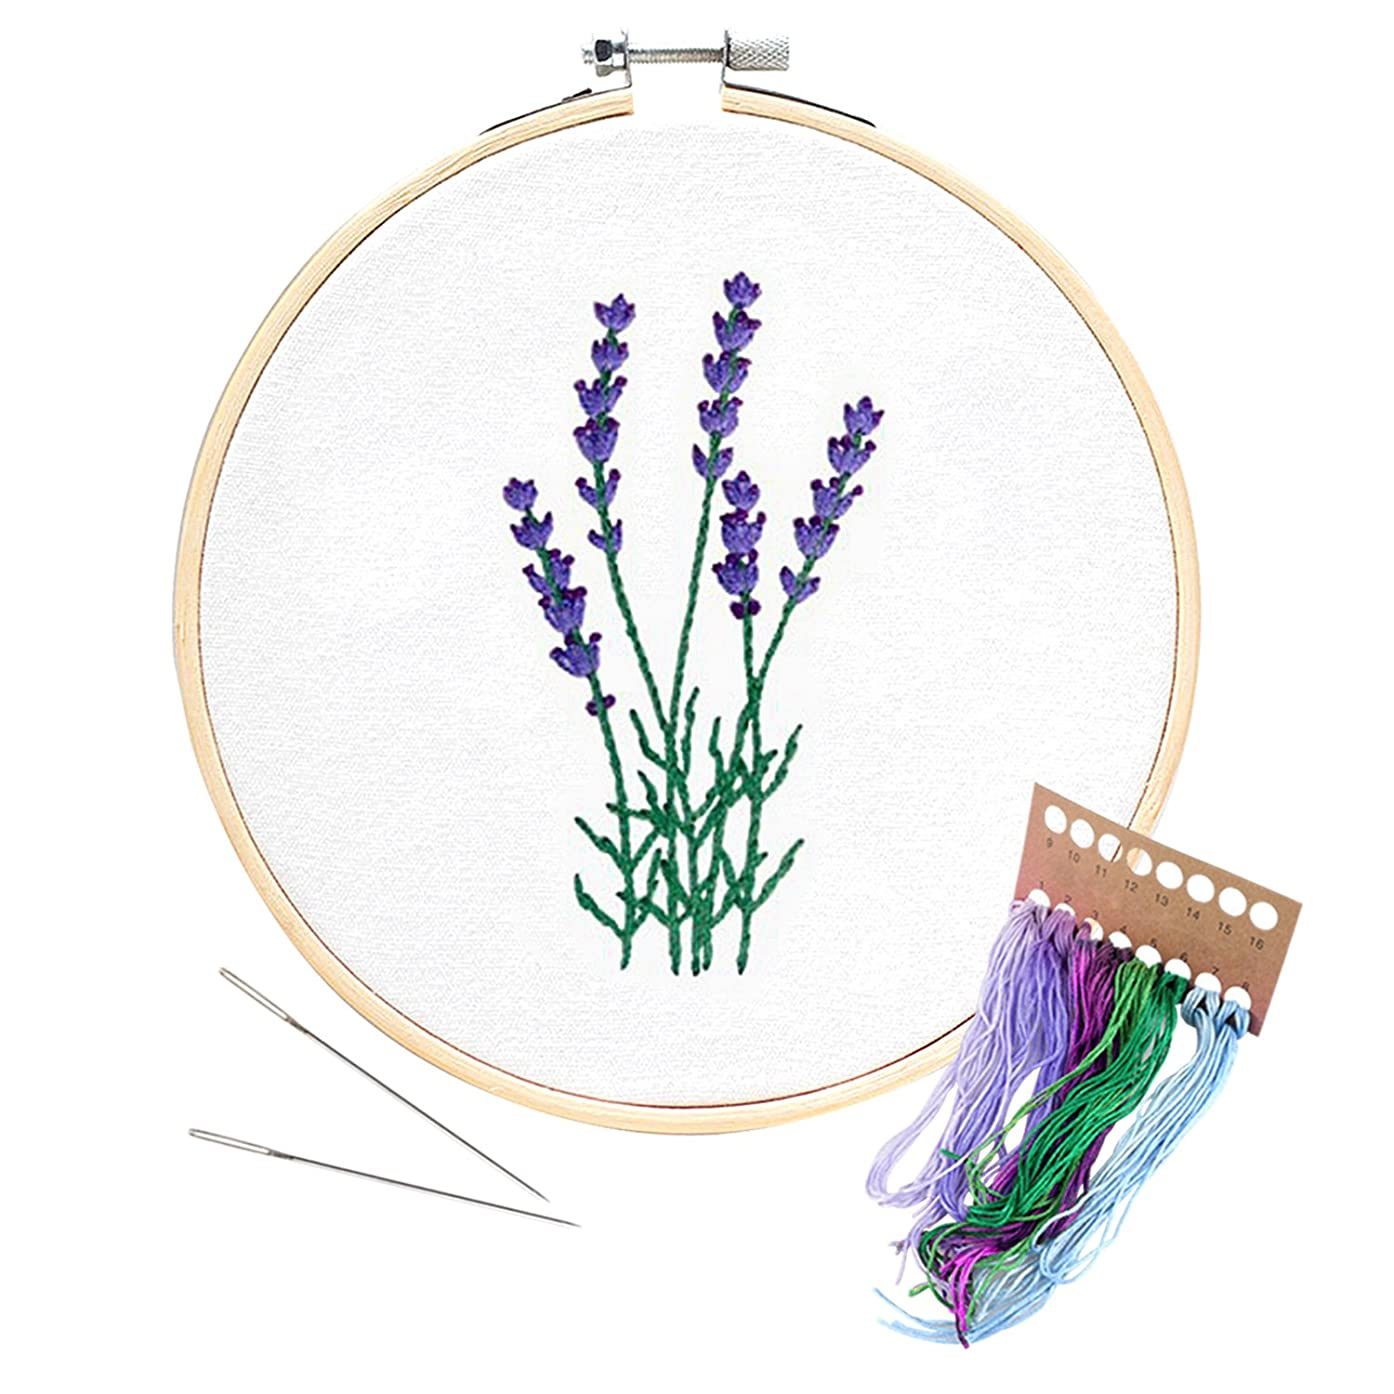 Unime Embroidery Starter Kit with Pattern Full Range Embroidery Kit with Embroidery Cloth, Embroidery Hoop, Color Threads, Needles (Lavender)